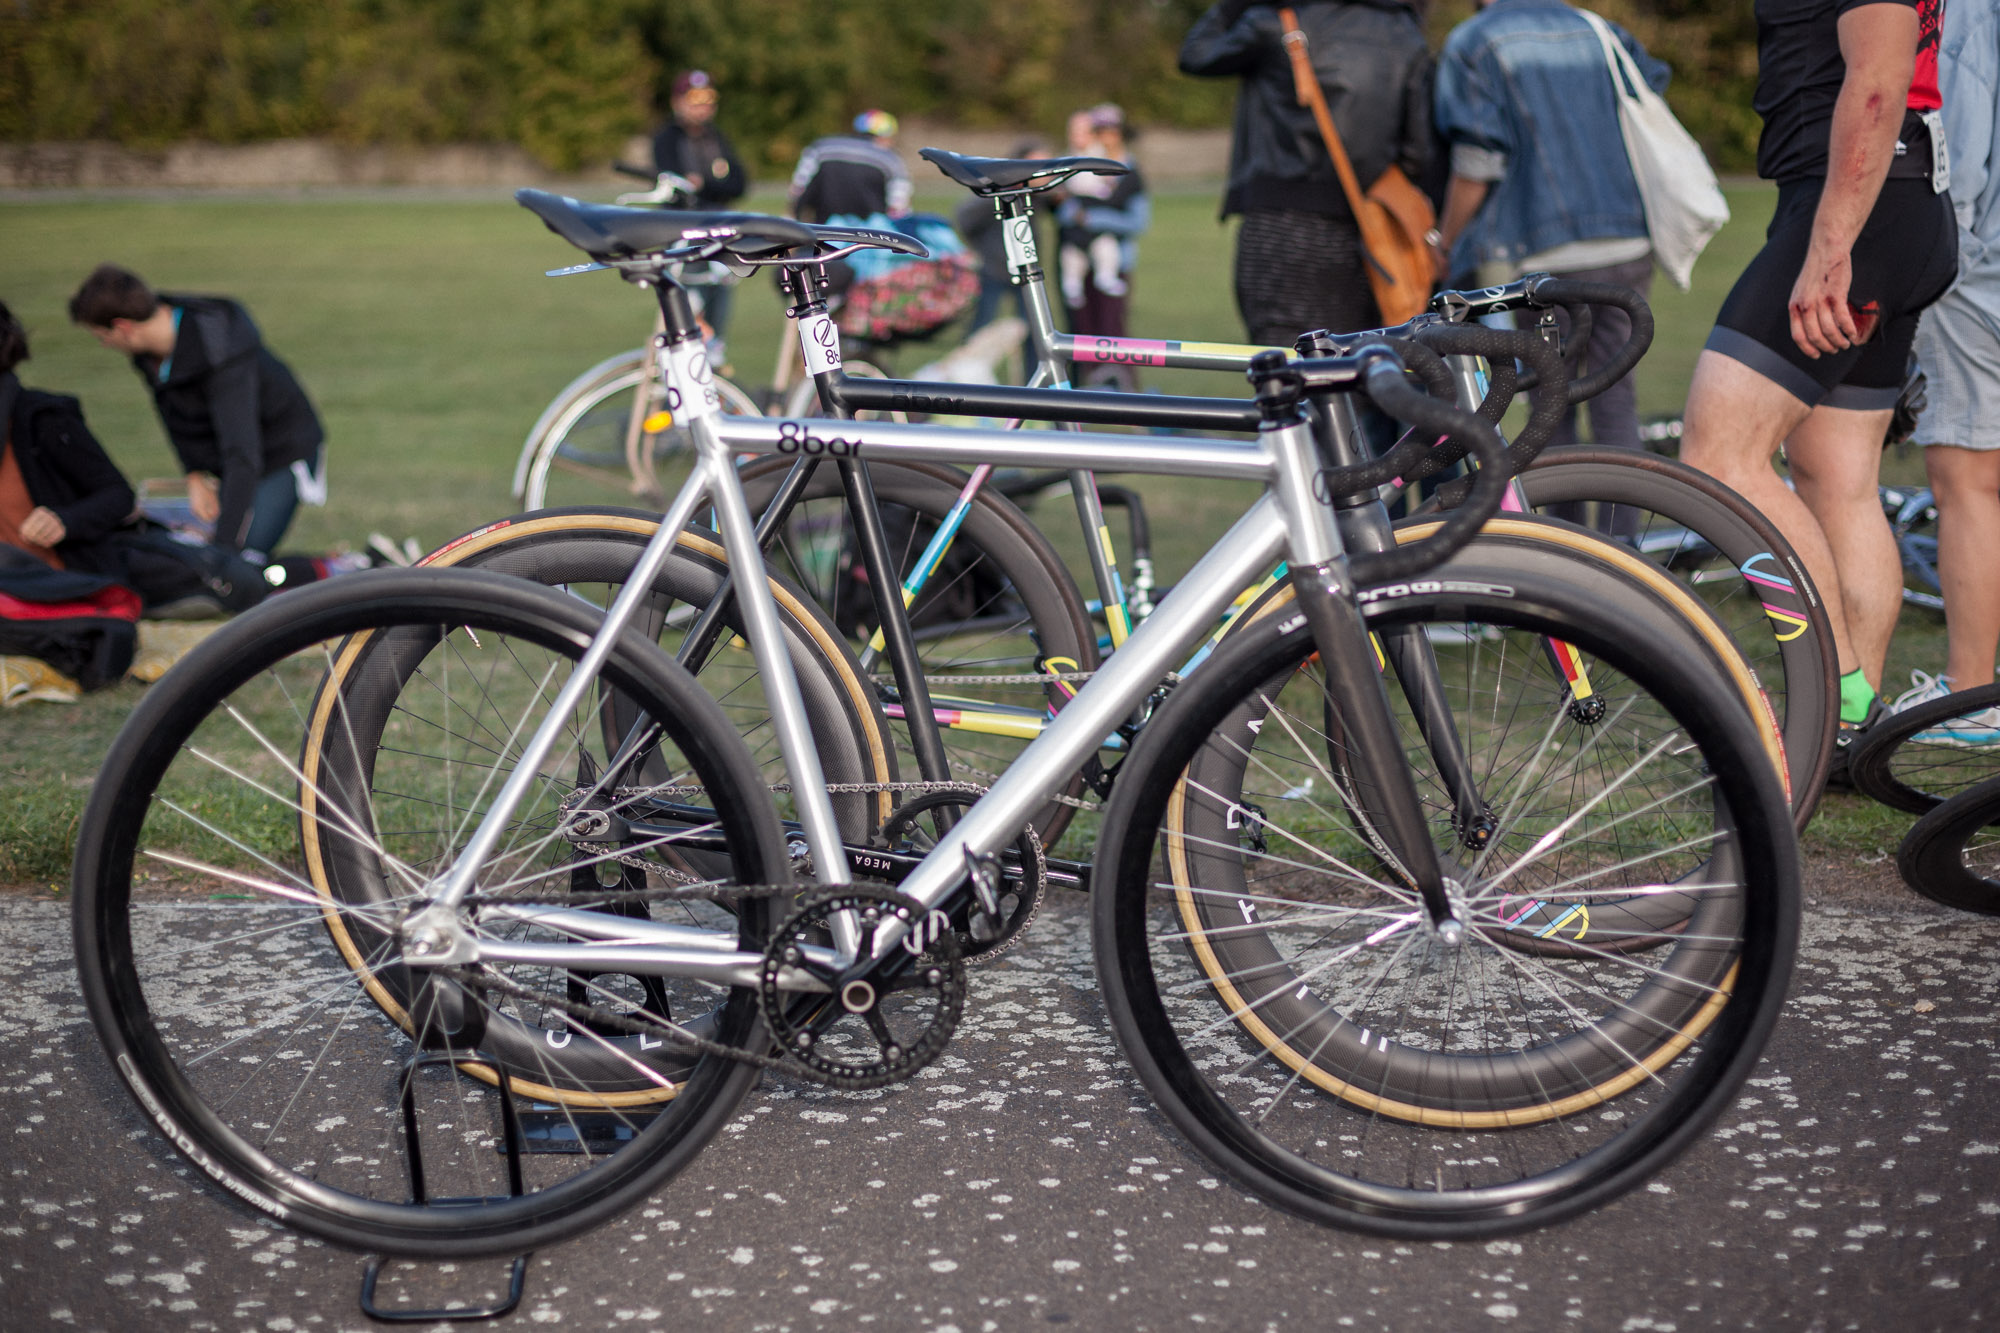 8bar-last-one-standing-fixed-gear-race-0355